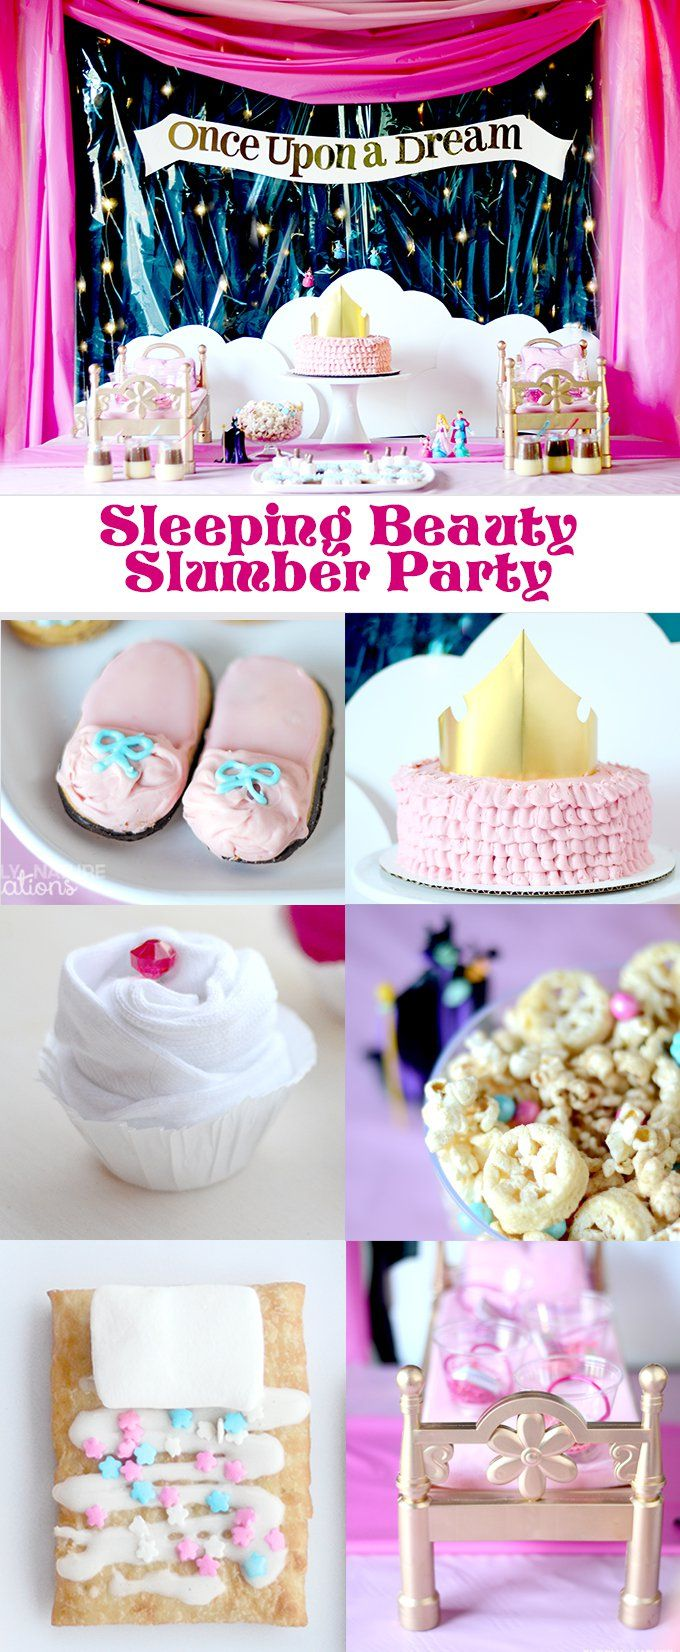 Sleeping Beauty Princess Slumber Party!  Best Slumber Party ideas with cute themed treats, games and decor! #DisneyBeauties #CollectiveBias #shop